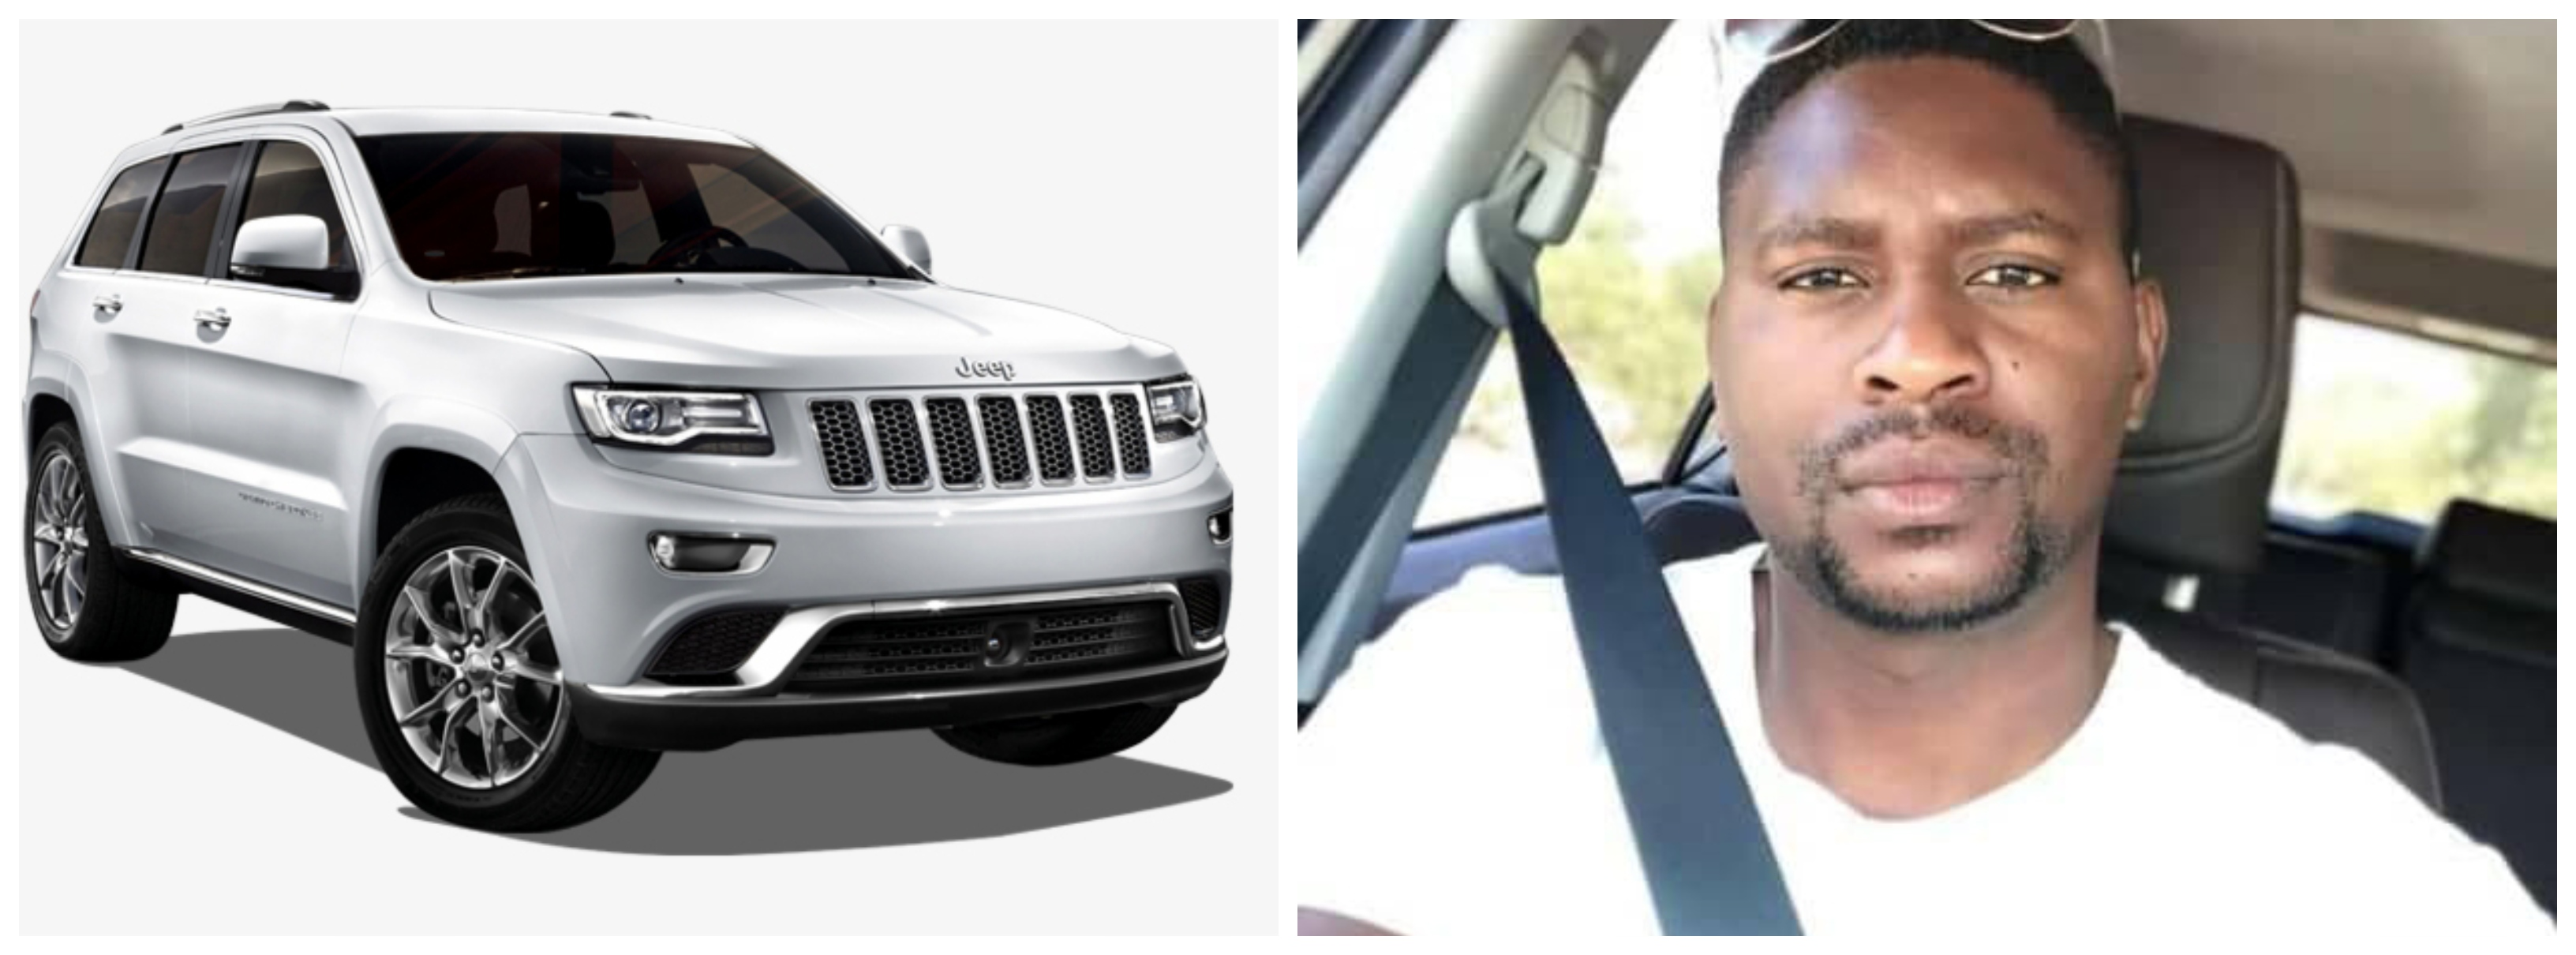 Man buys new Jeep with fake documents